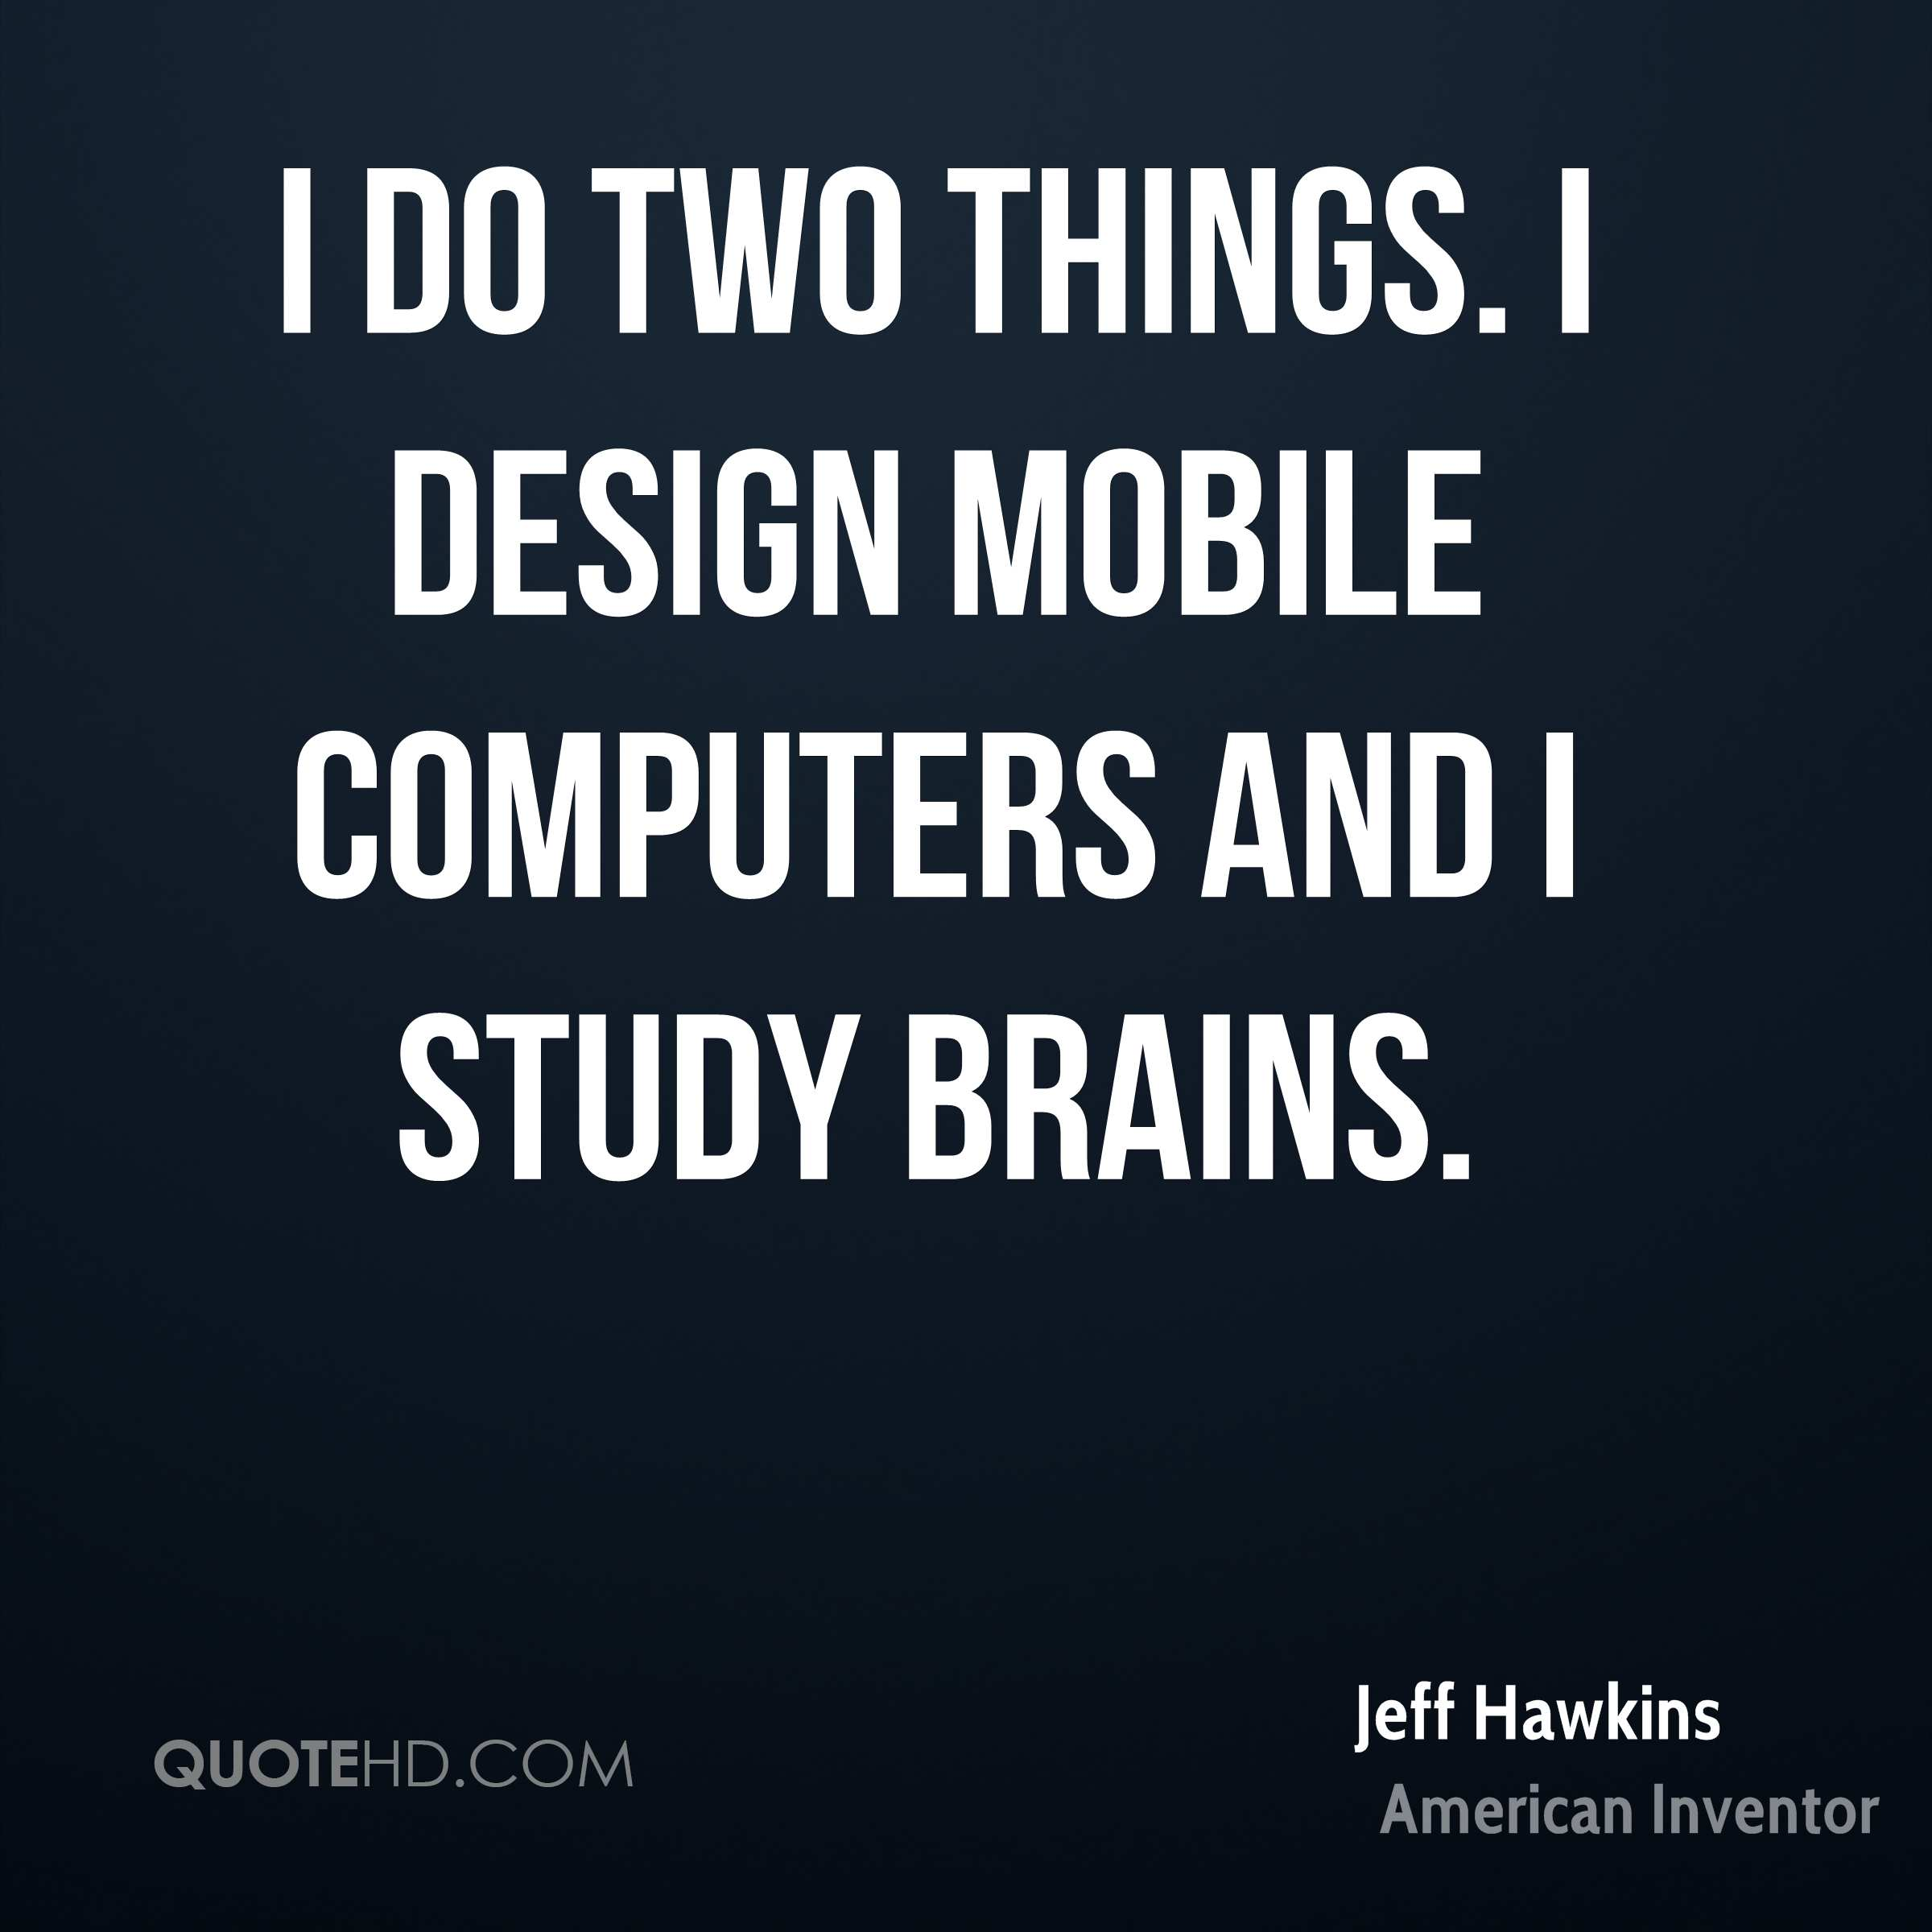 I do two things. I design mobile computers and I study brains.